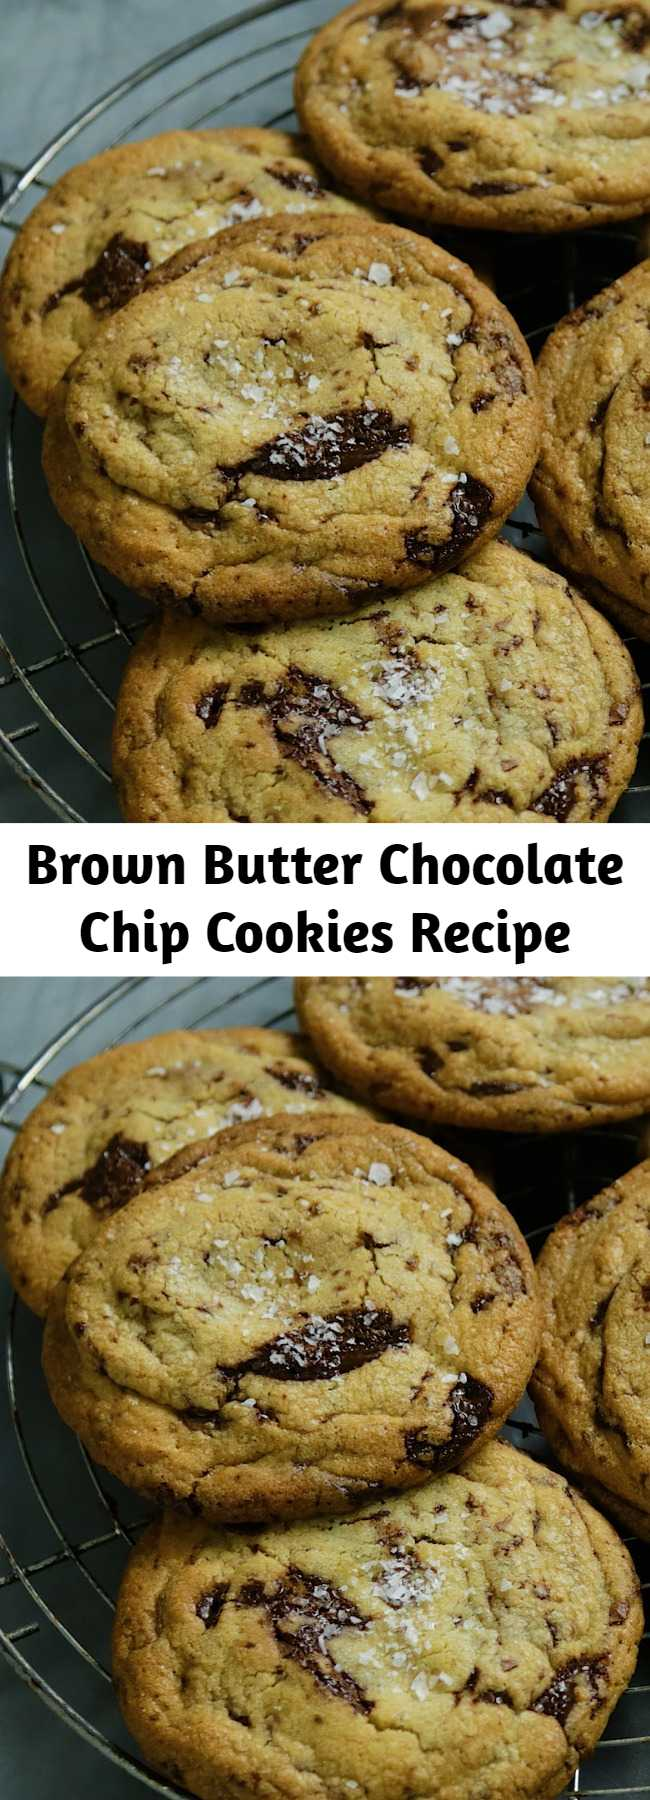 Brown Butter Chocolate Chip Cookies Recipe - Your new go-to chocolate chip cookie recipe.